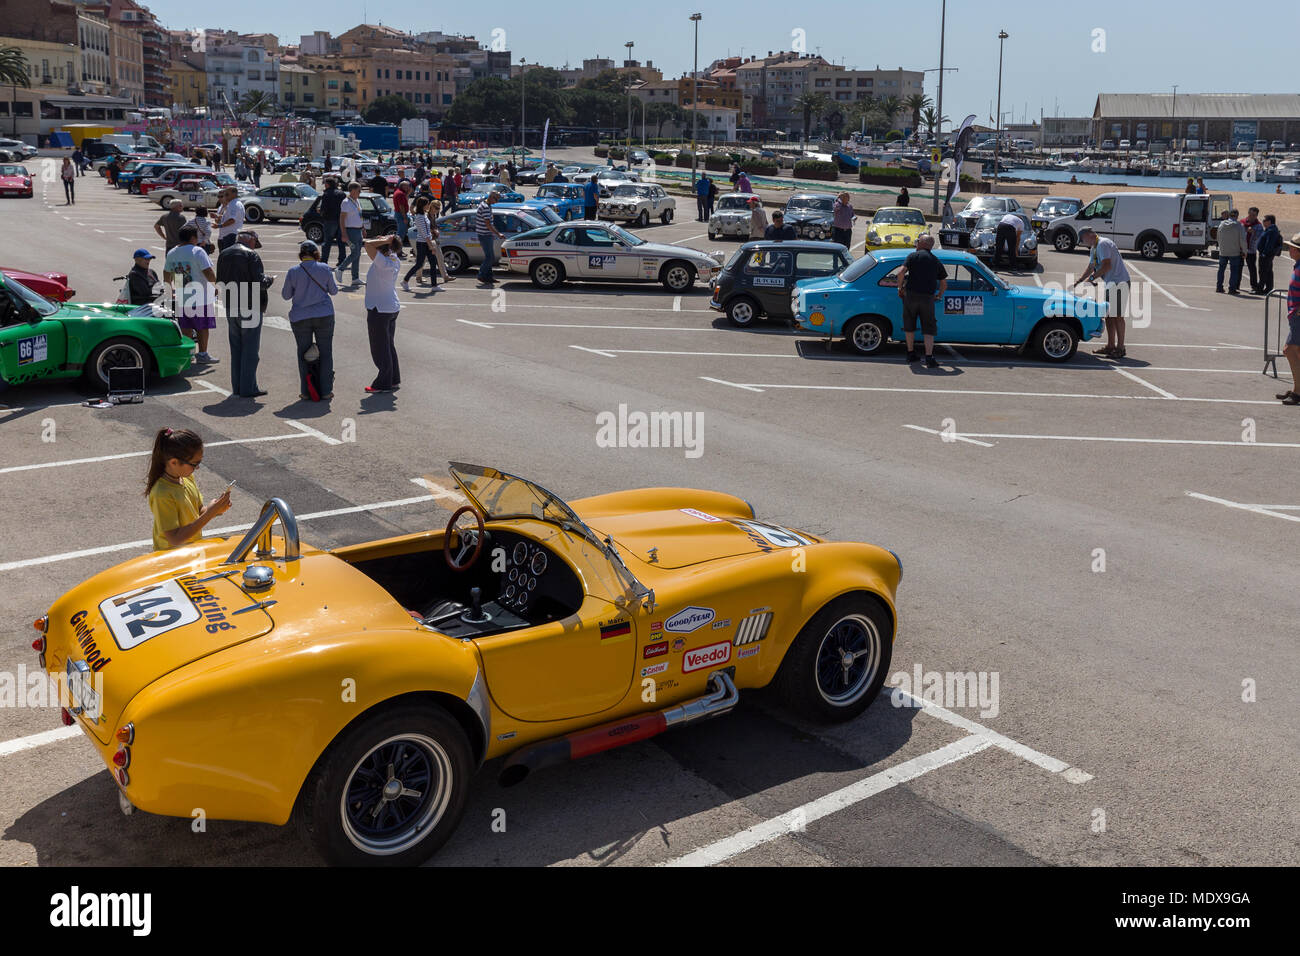 Catalonia, Spain. 20th April, 2018. XV Rally Costa Brava Historic car race in a small town Palamos in Catalonia. 04. 20. 2018 Spain, town Palamos Credit: Arpad Radoczy/Alamy Live News - Stock Image